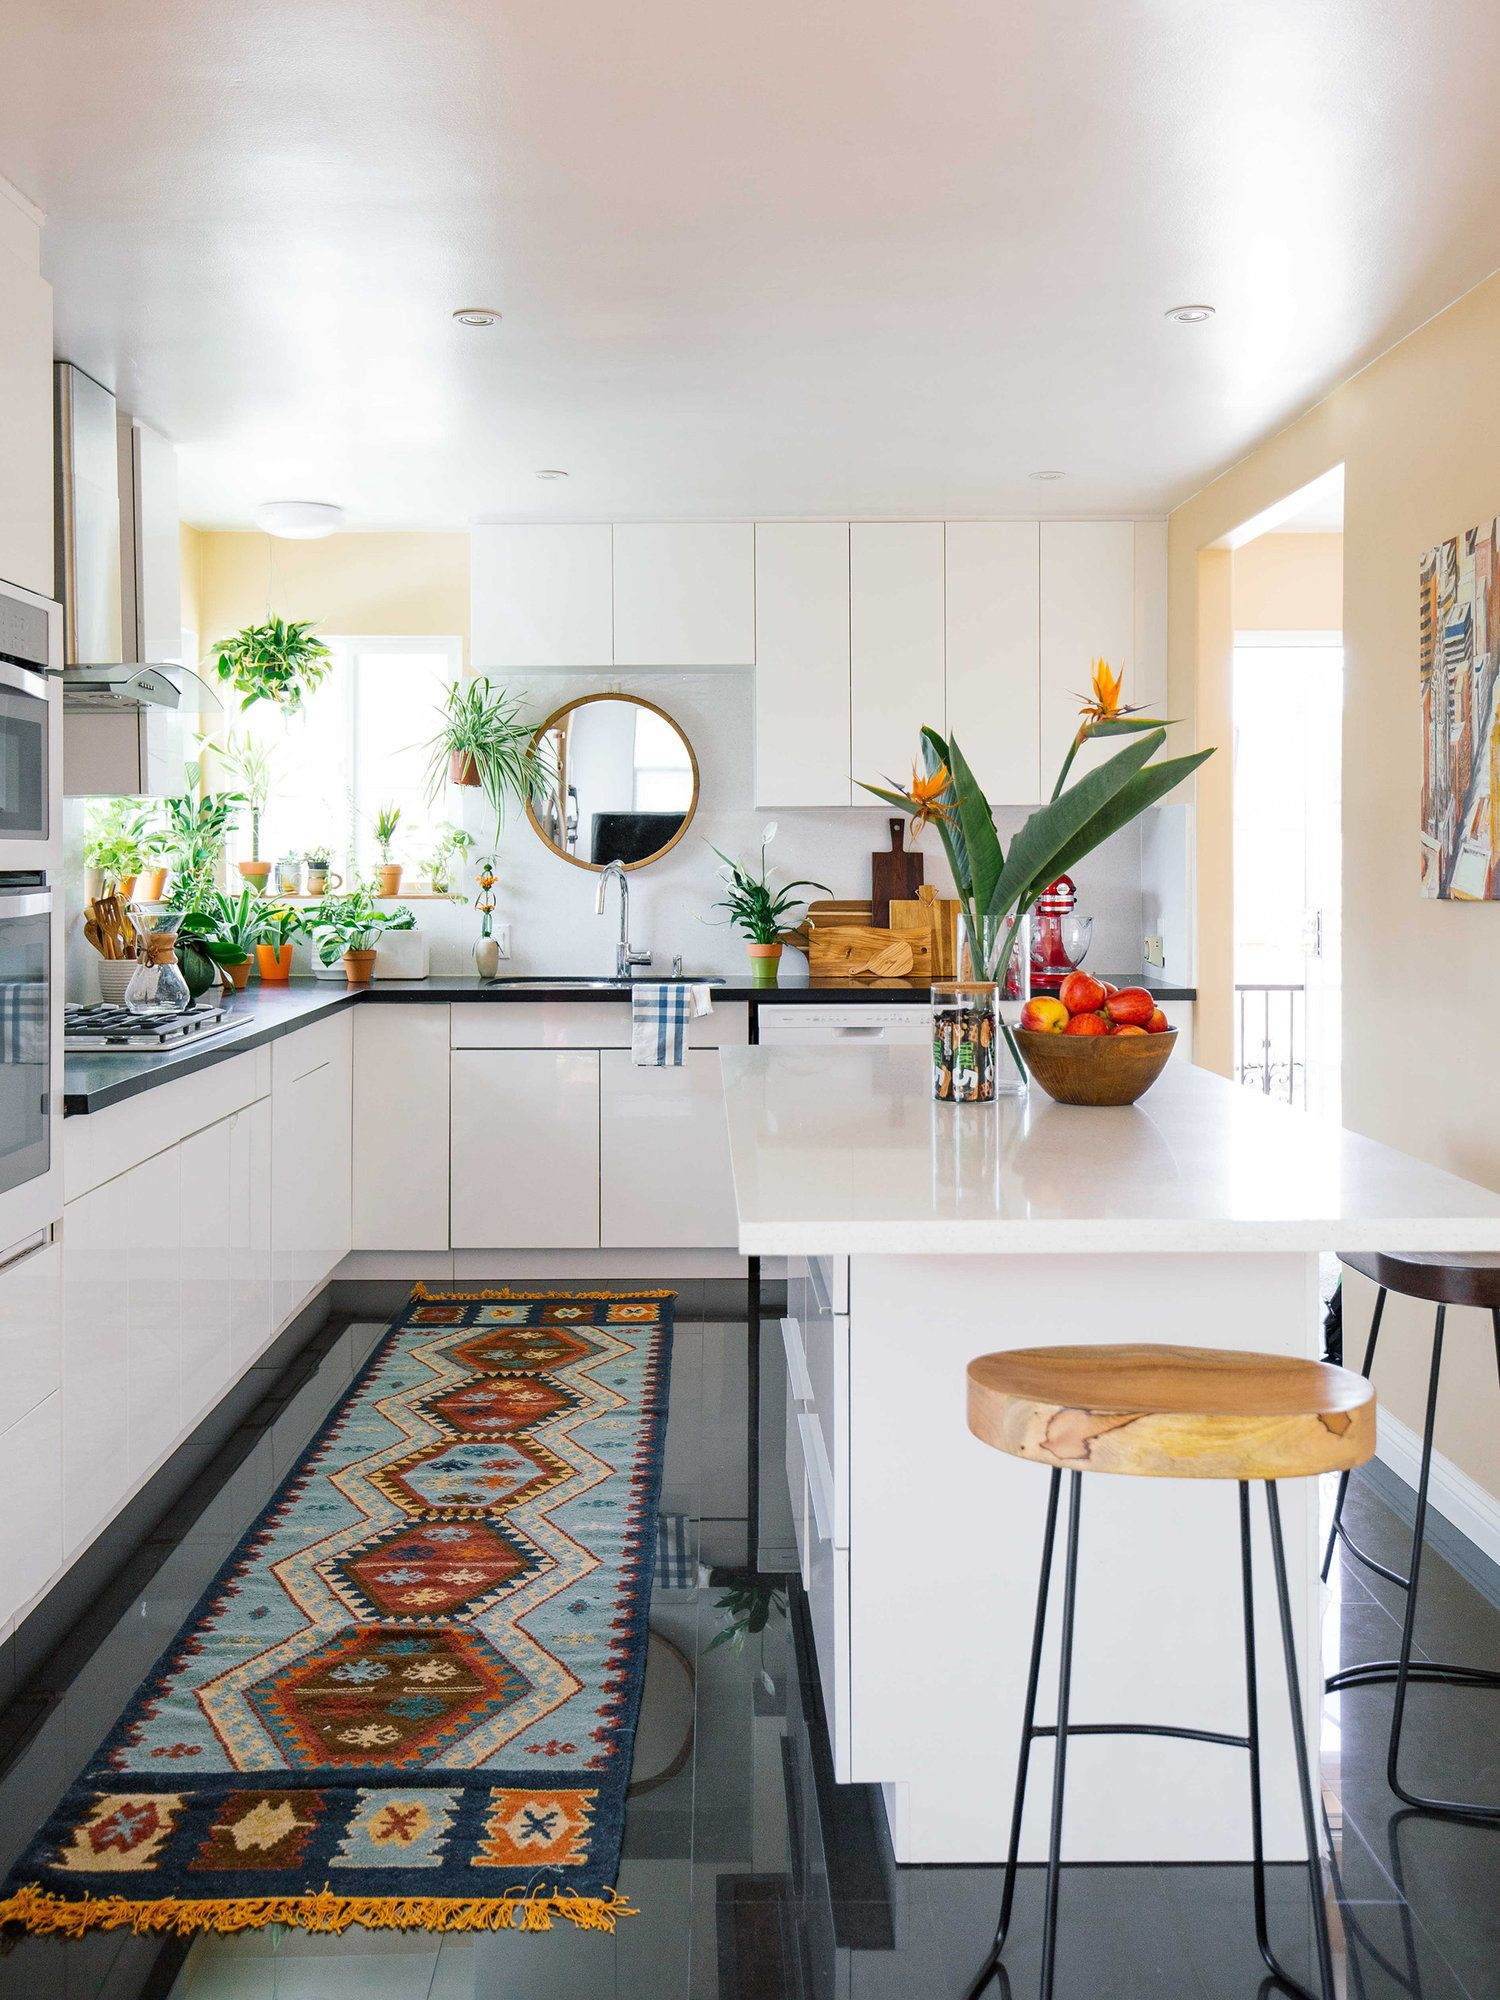 21 Kitchen Makeovers With Before And After Photos Best Kitchen Transformations Ever